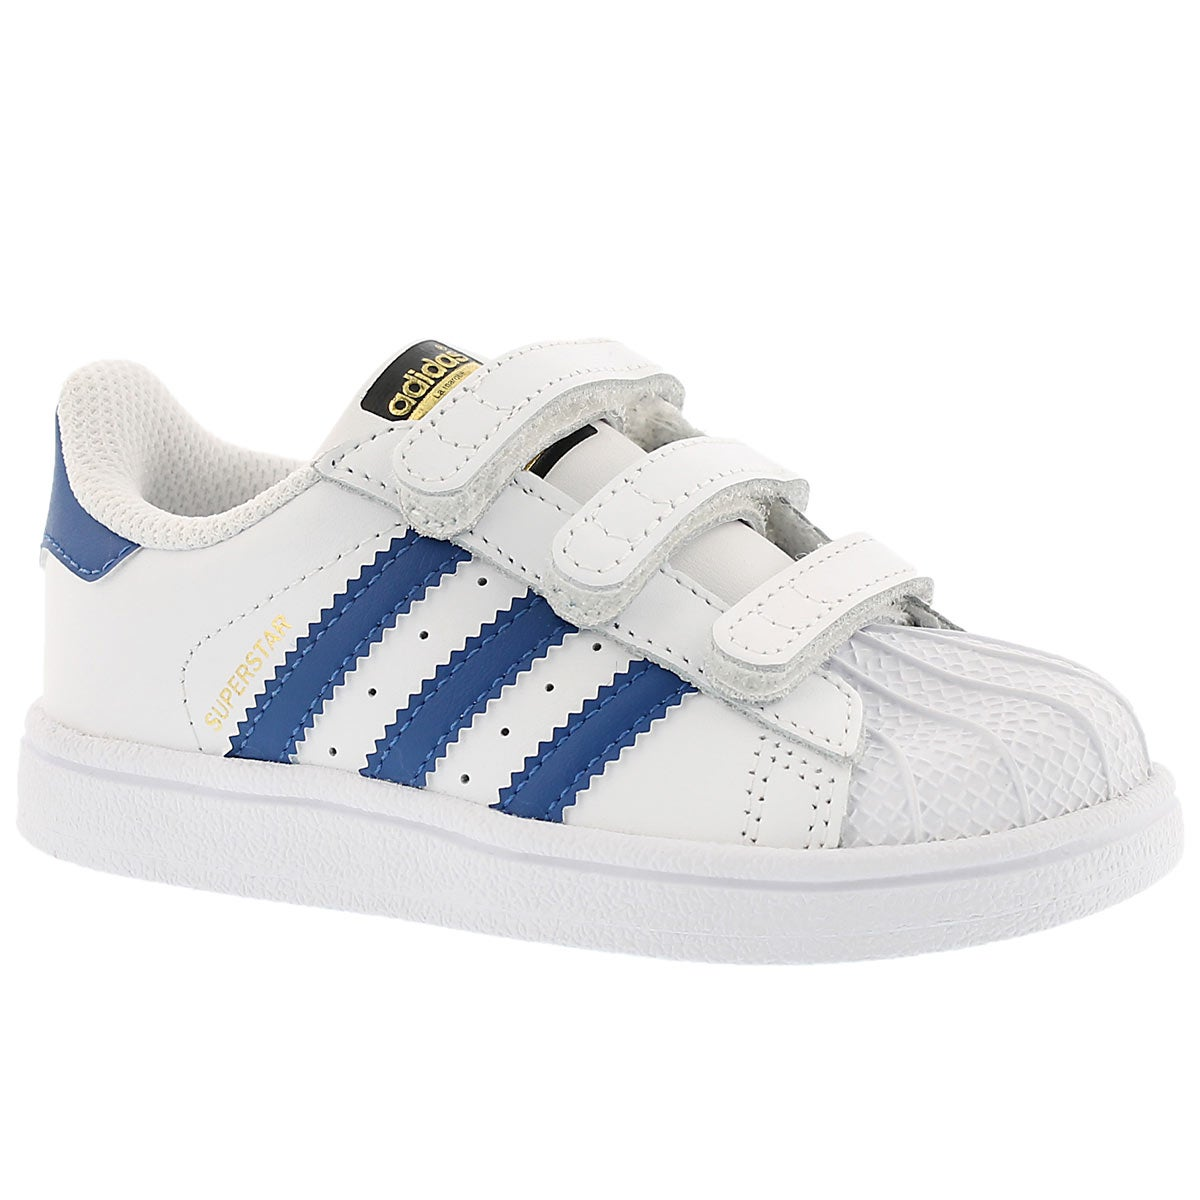 Infants' SUPERSTAR FOUNDATION wht/blu sneakers